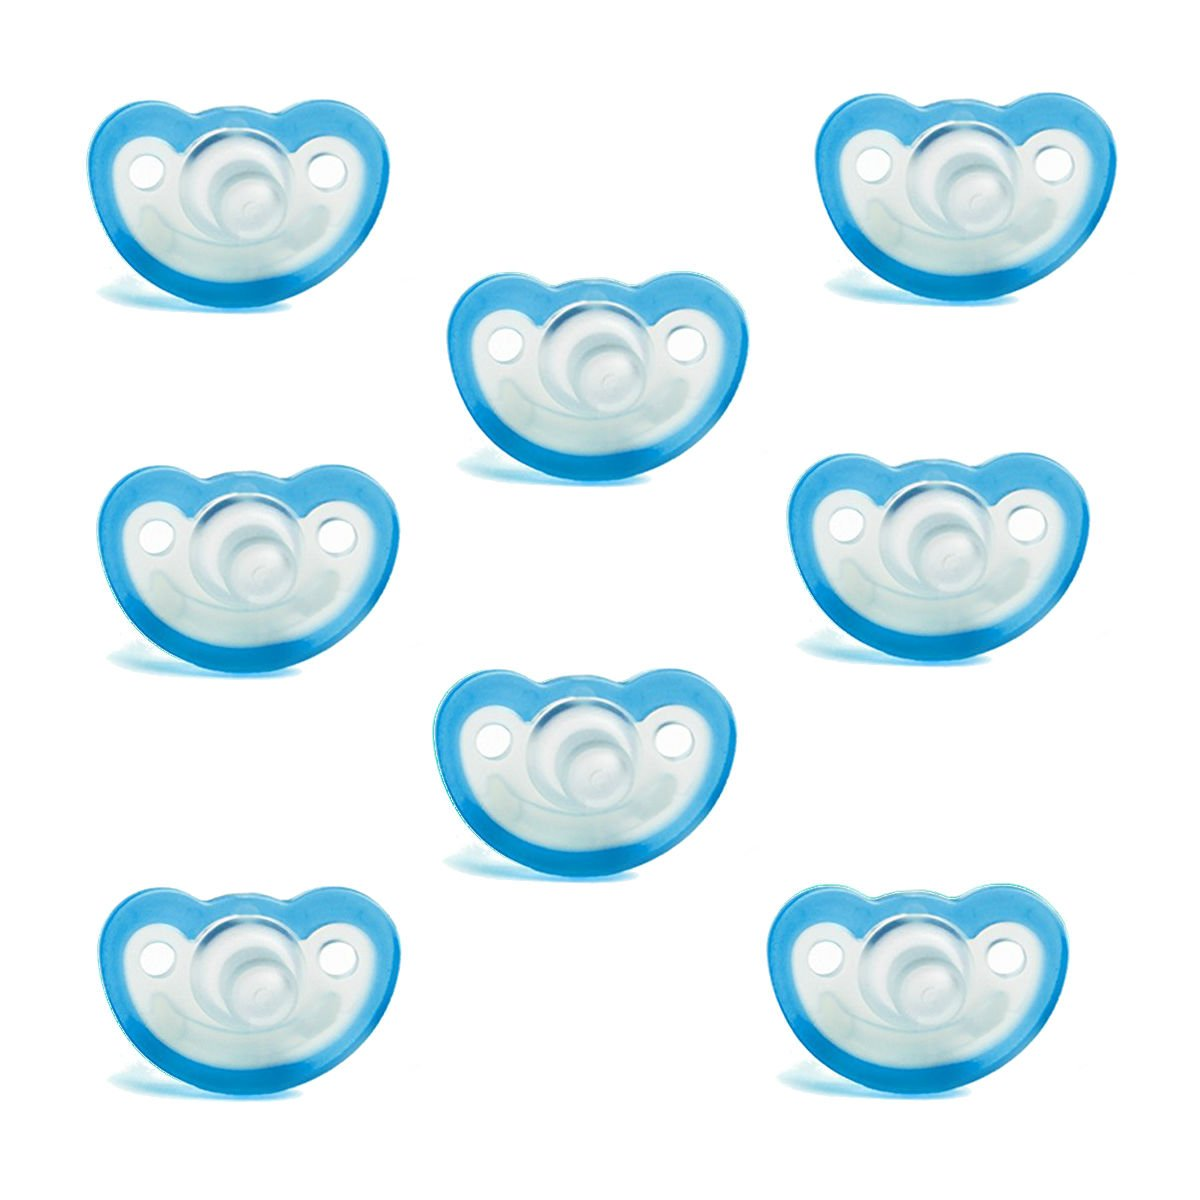 Razbaby JollyPop Baby Pacifier 3+ Months 8 Pack - Blue by Razbaby